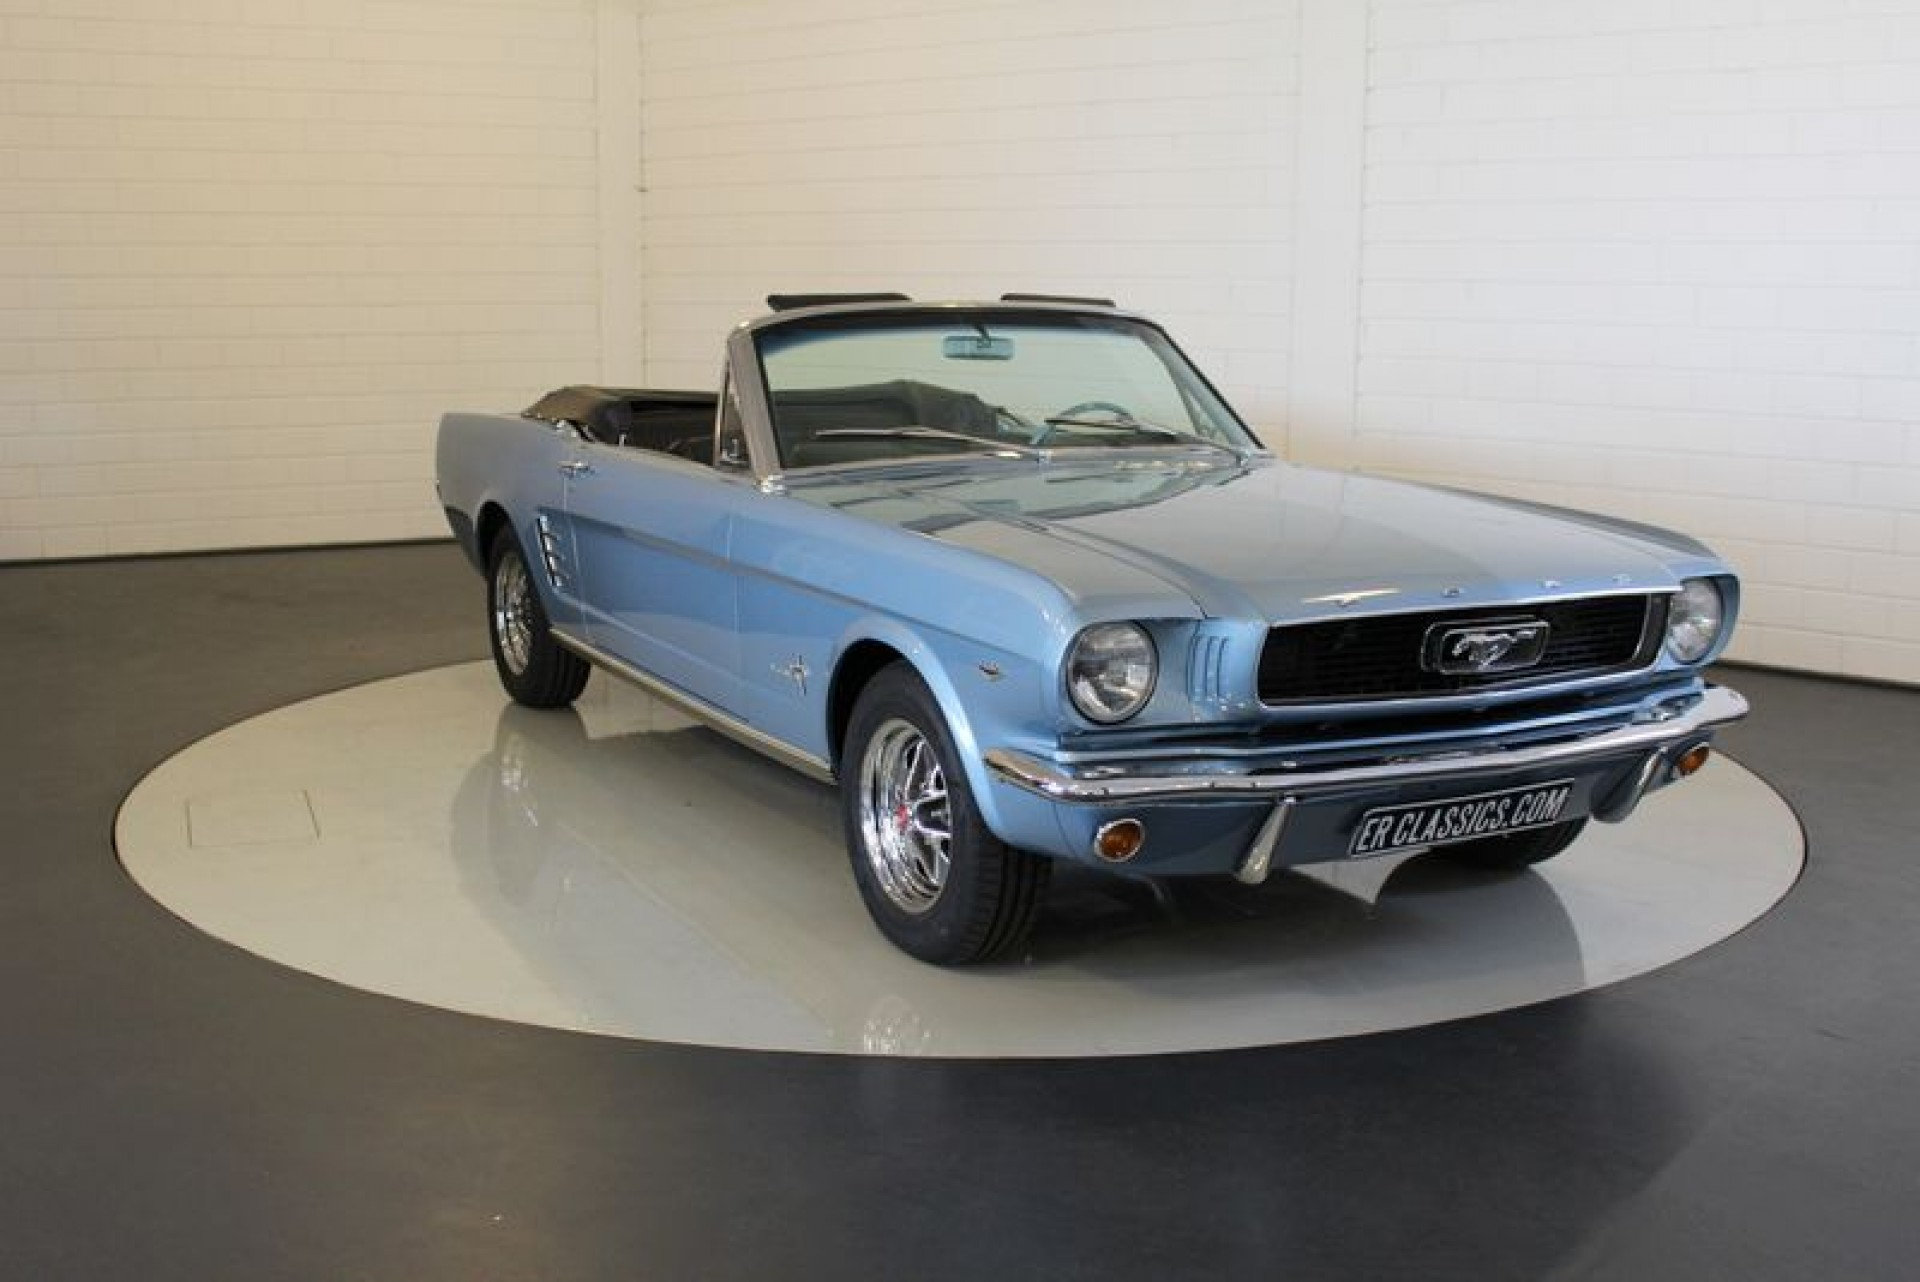 ford mustang a vendre ford mustang a vendre 1966 ford mustang a vendre 1967 ford mustang a. Black Bedroom Furniture Sets. Home Design Ideas